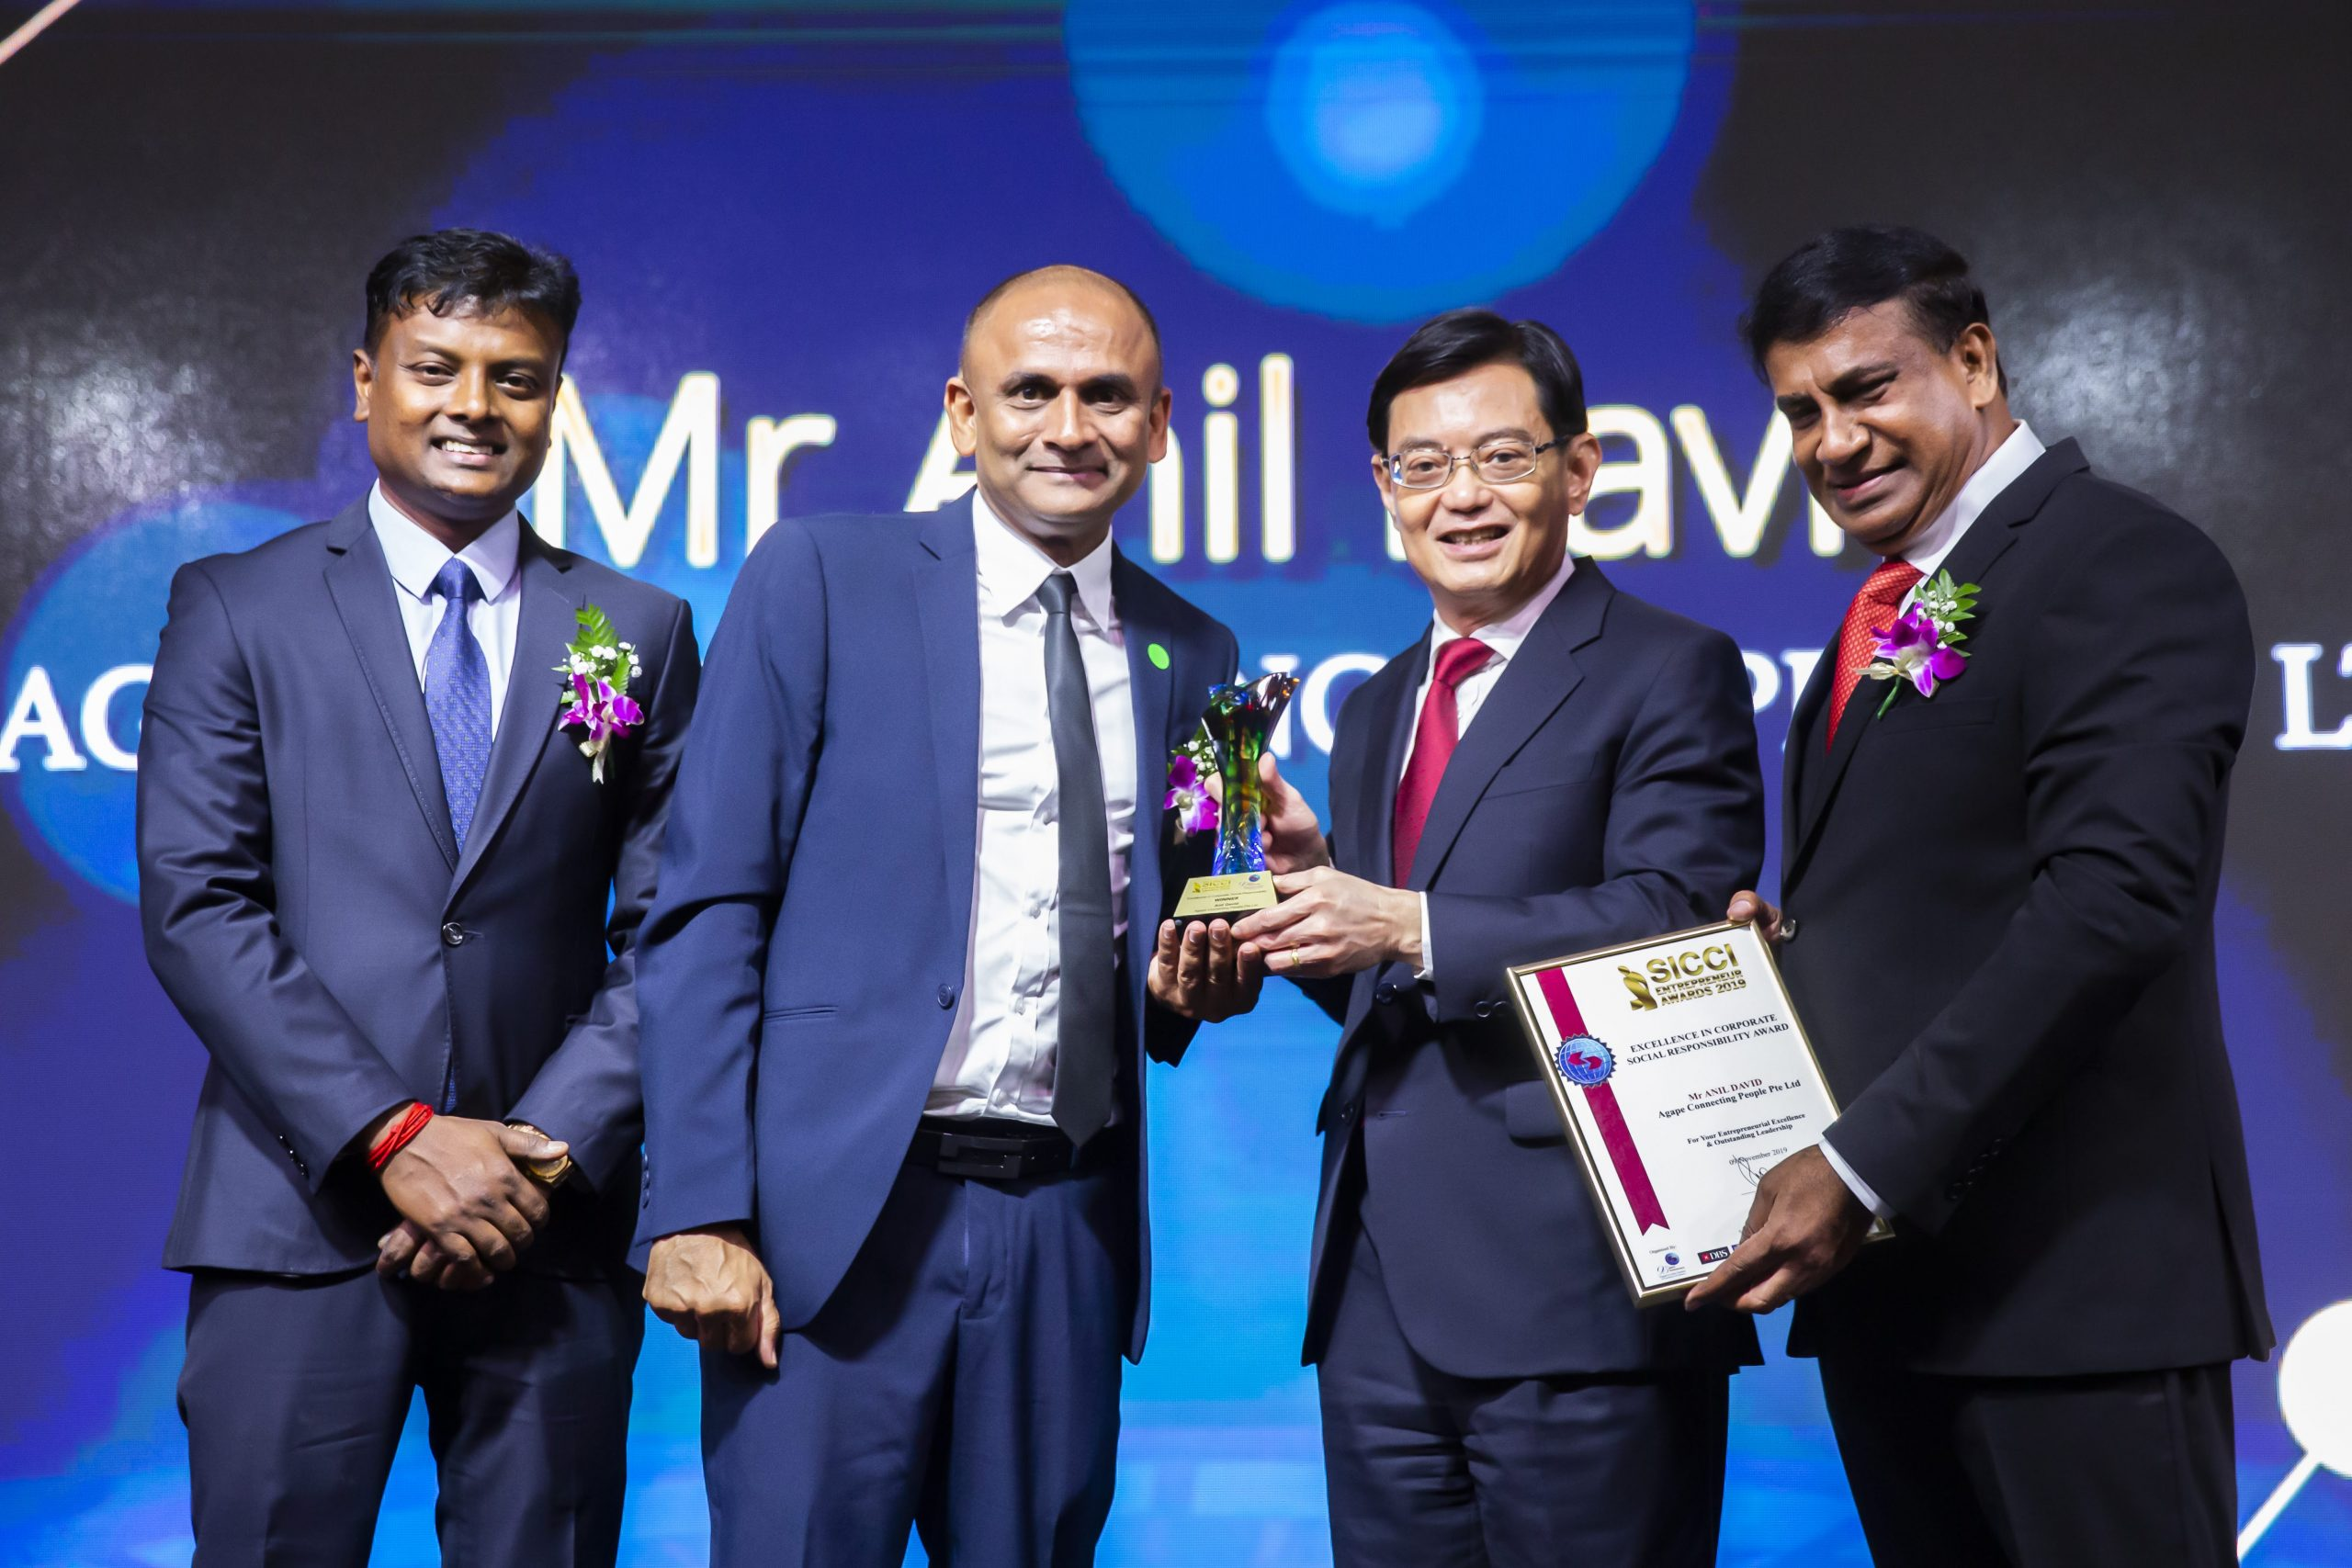 AGAPE's Founder Anil David Wins Excellence Award